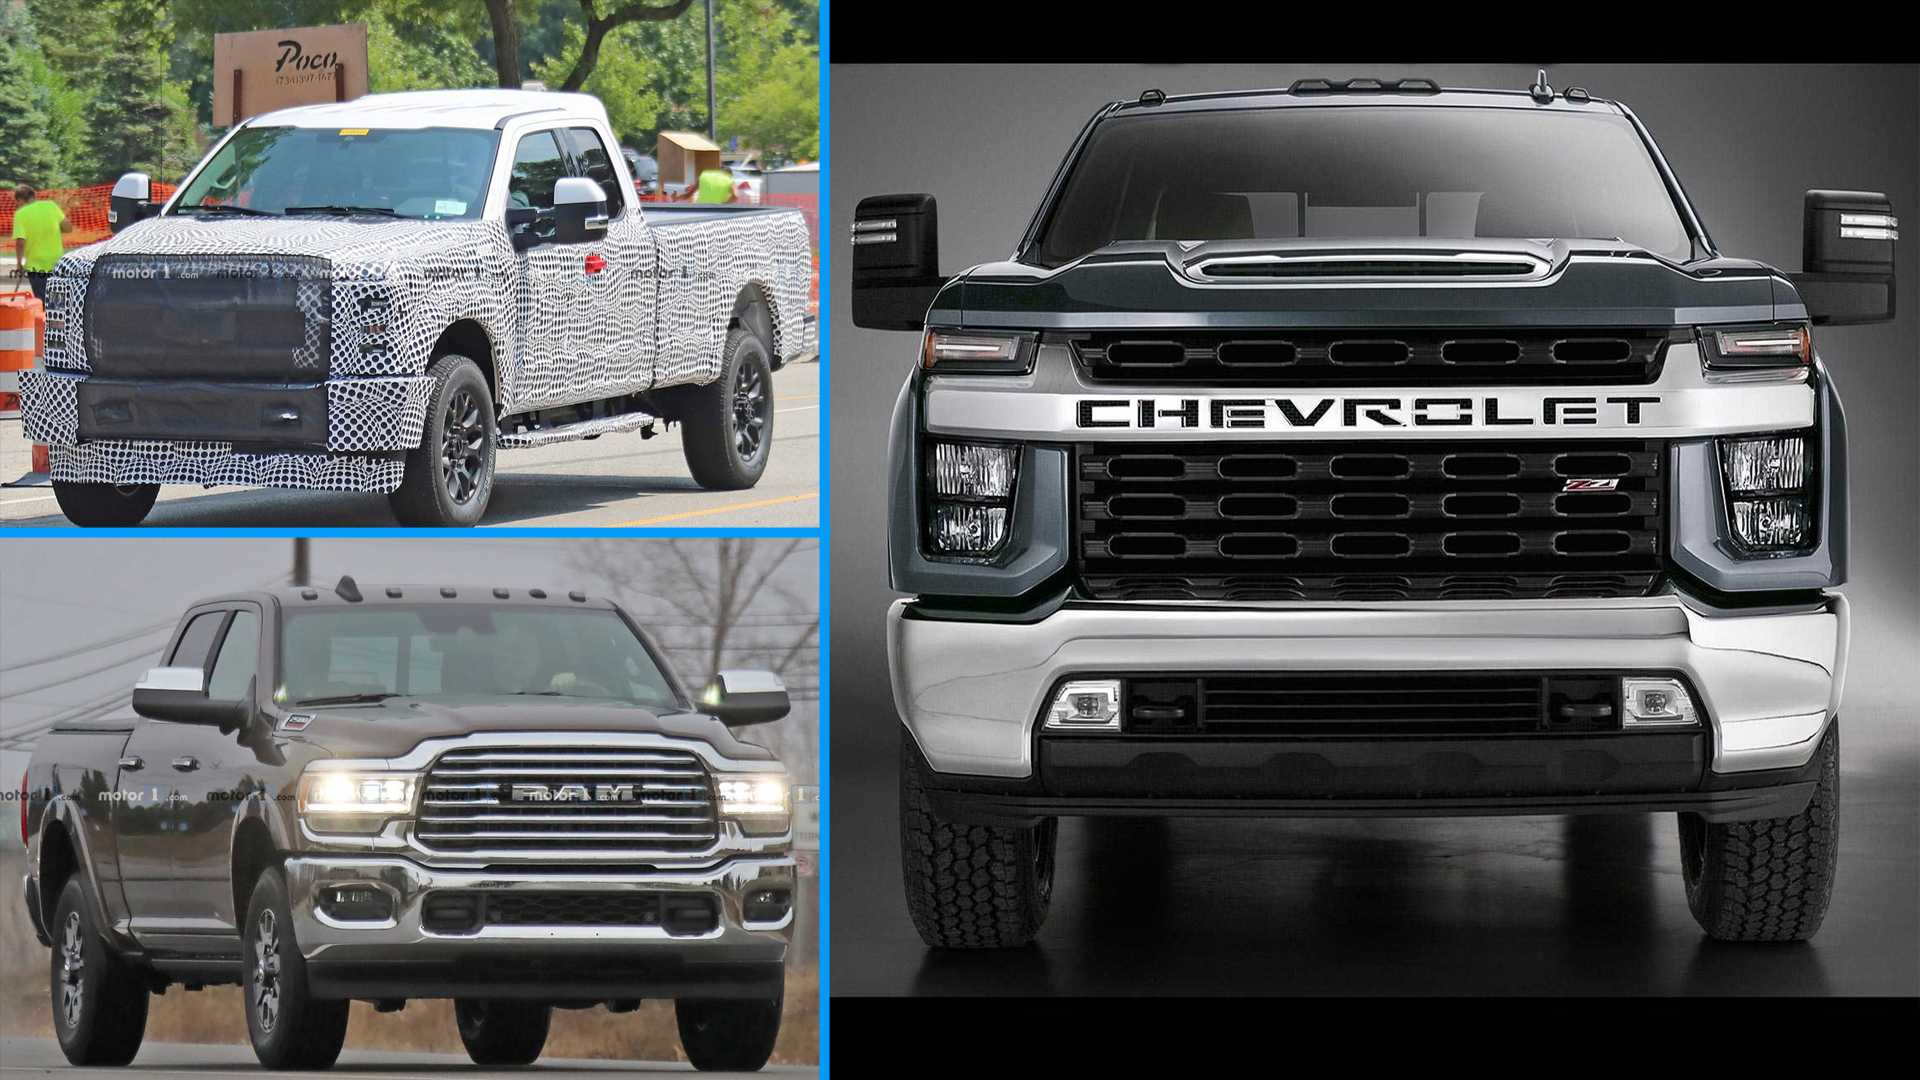 52 A 2020 GMC 2500 Vs Chevy 2500 Overview